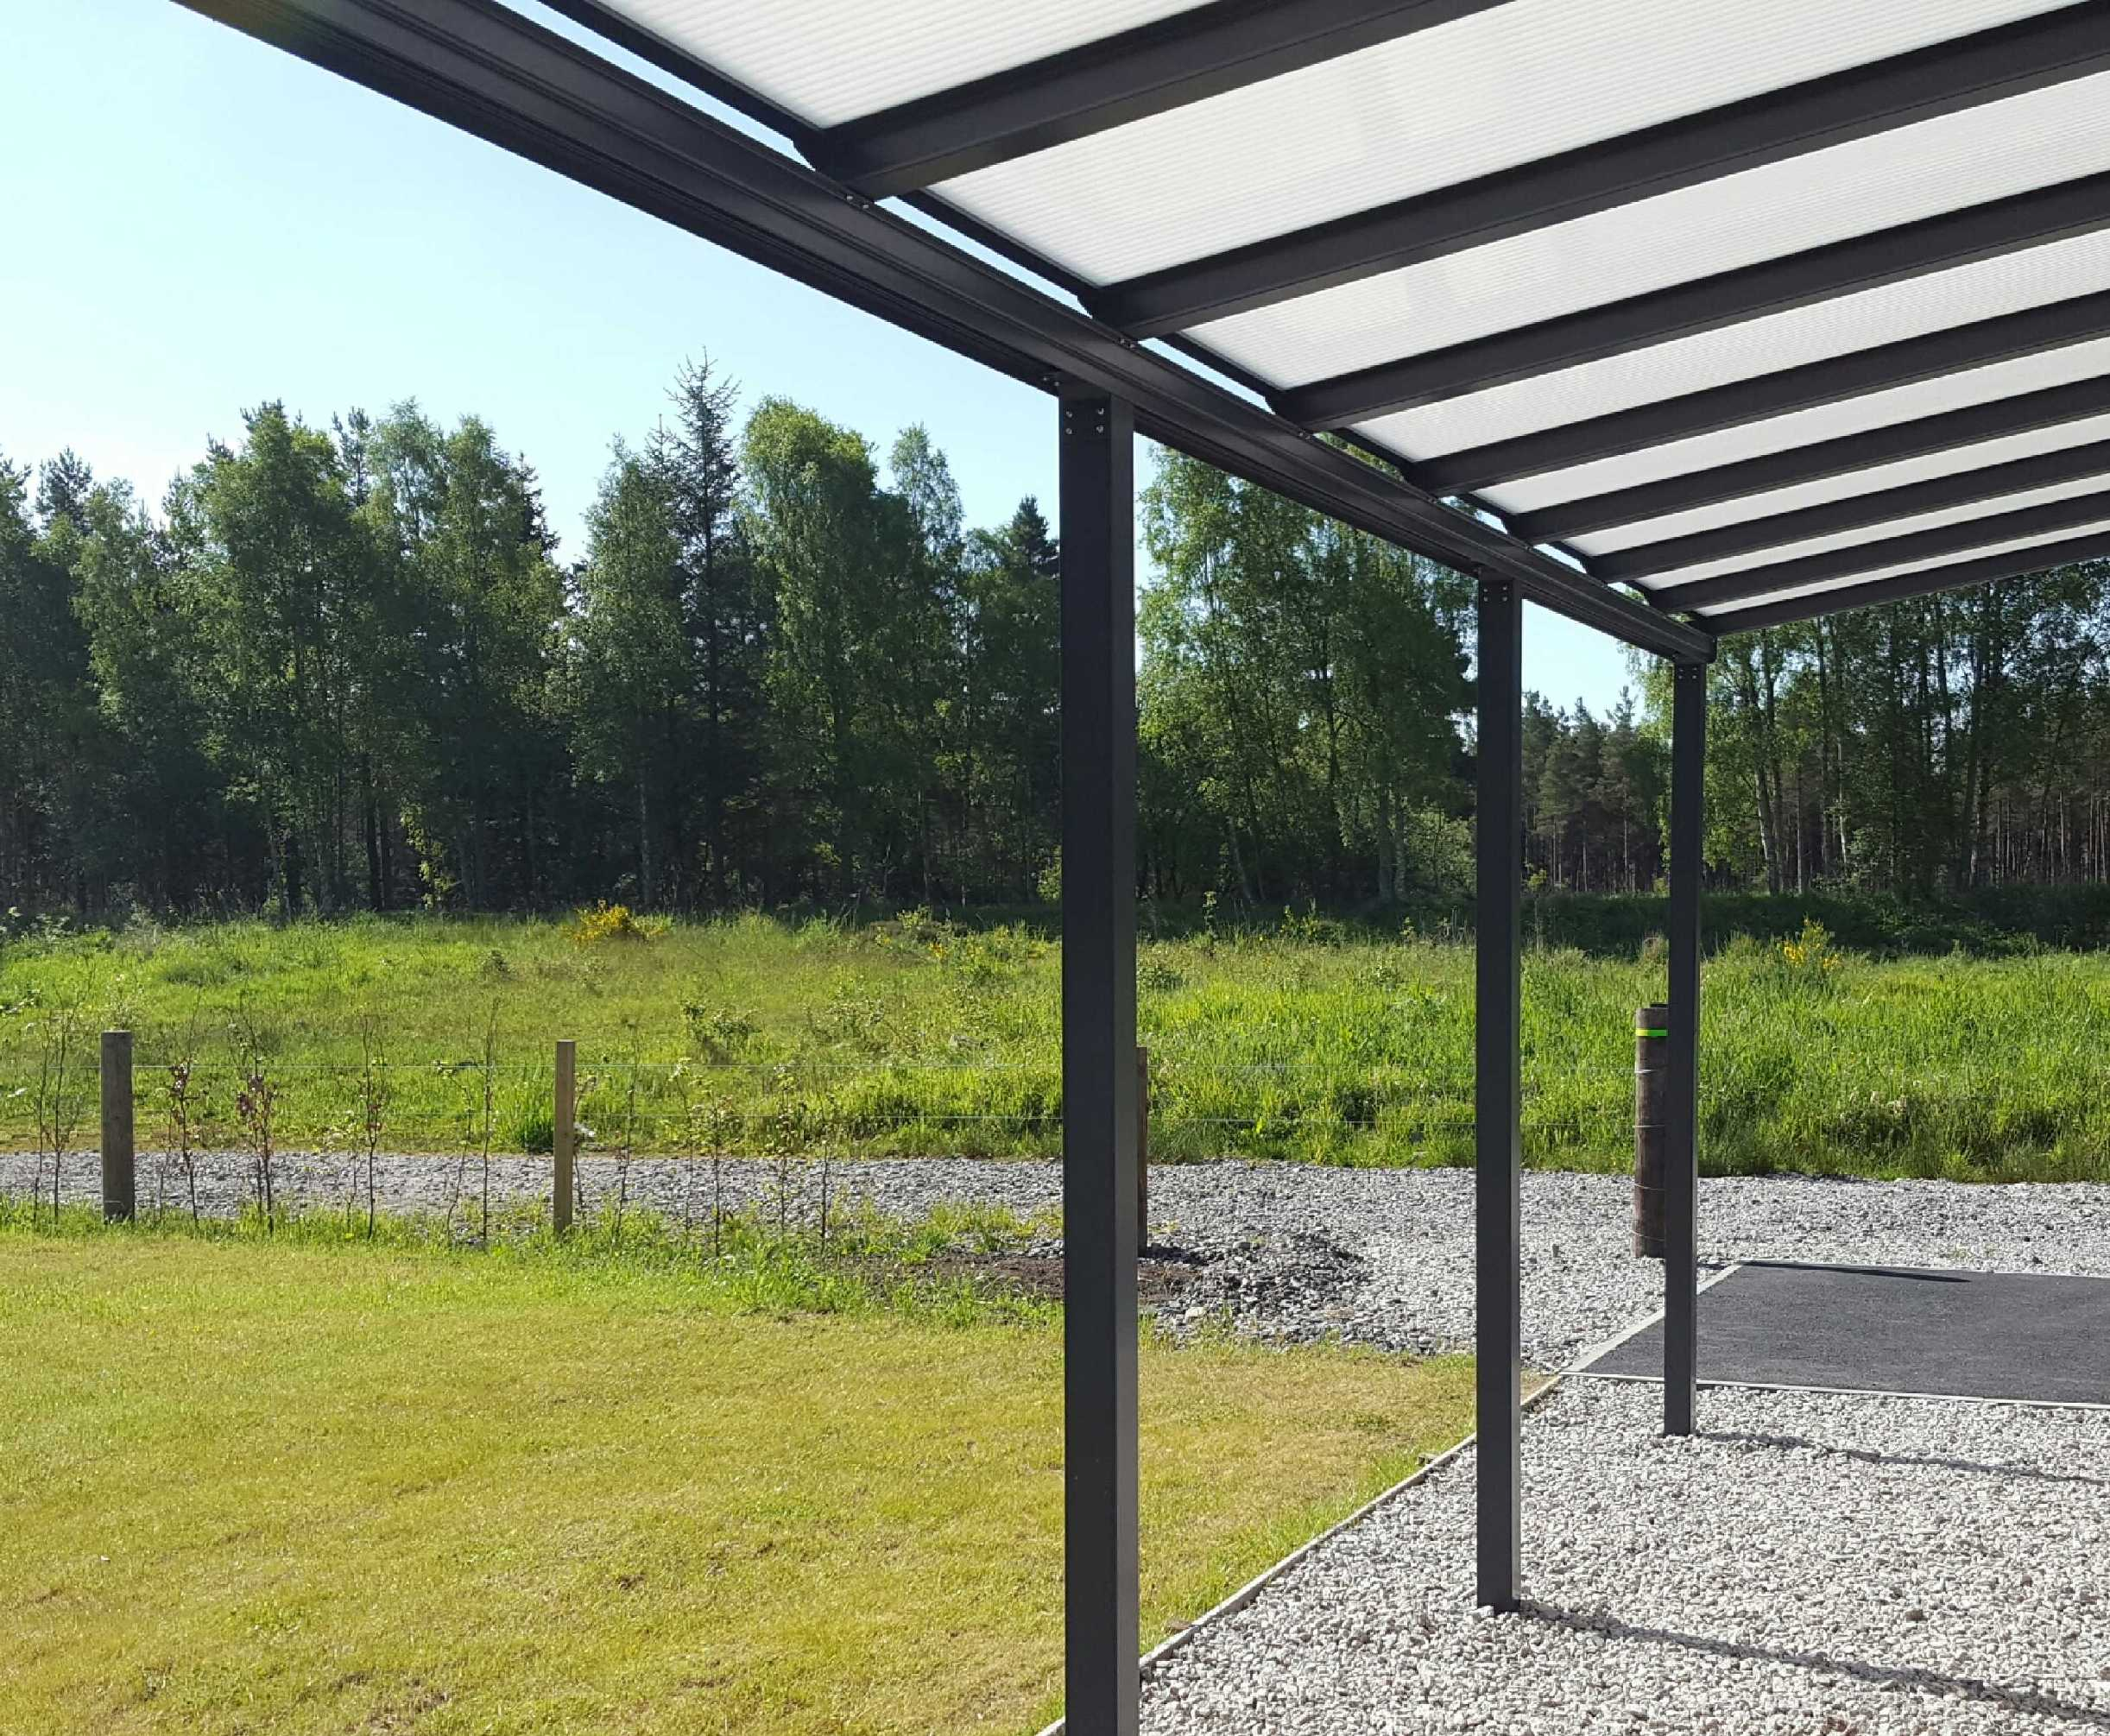 Omega Smart Lean-To Canopy, Anthracite Grey, 16mm Polycarbonate Glazing - 8.0m (W) x 4.5m (P), (4) Supporting Posts